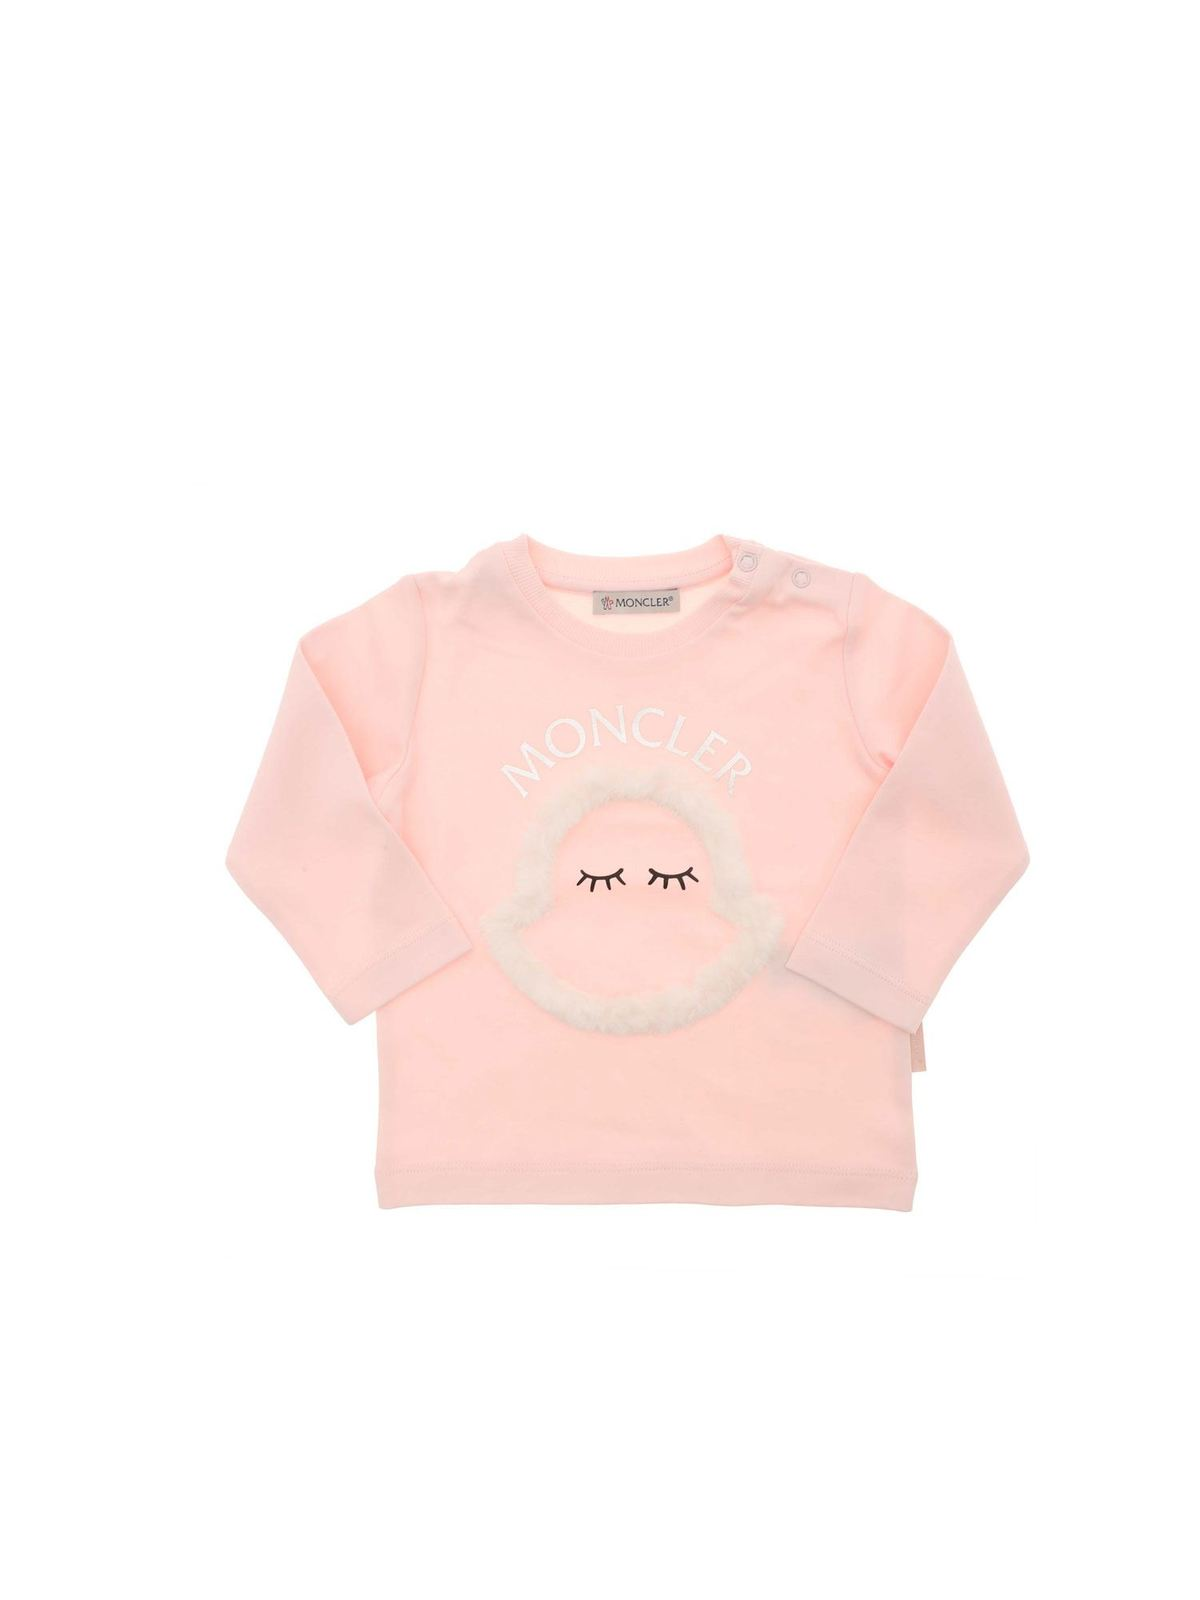 MONCLER JR FAUX FUR INSERT T-SHIRT IN PINK